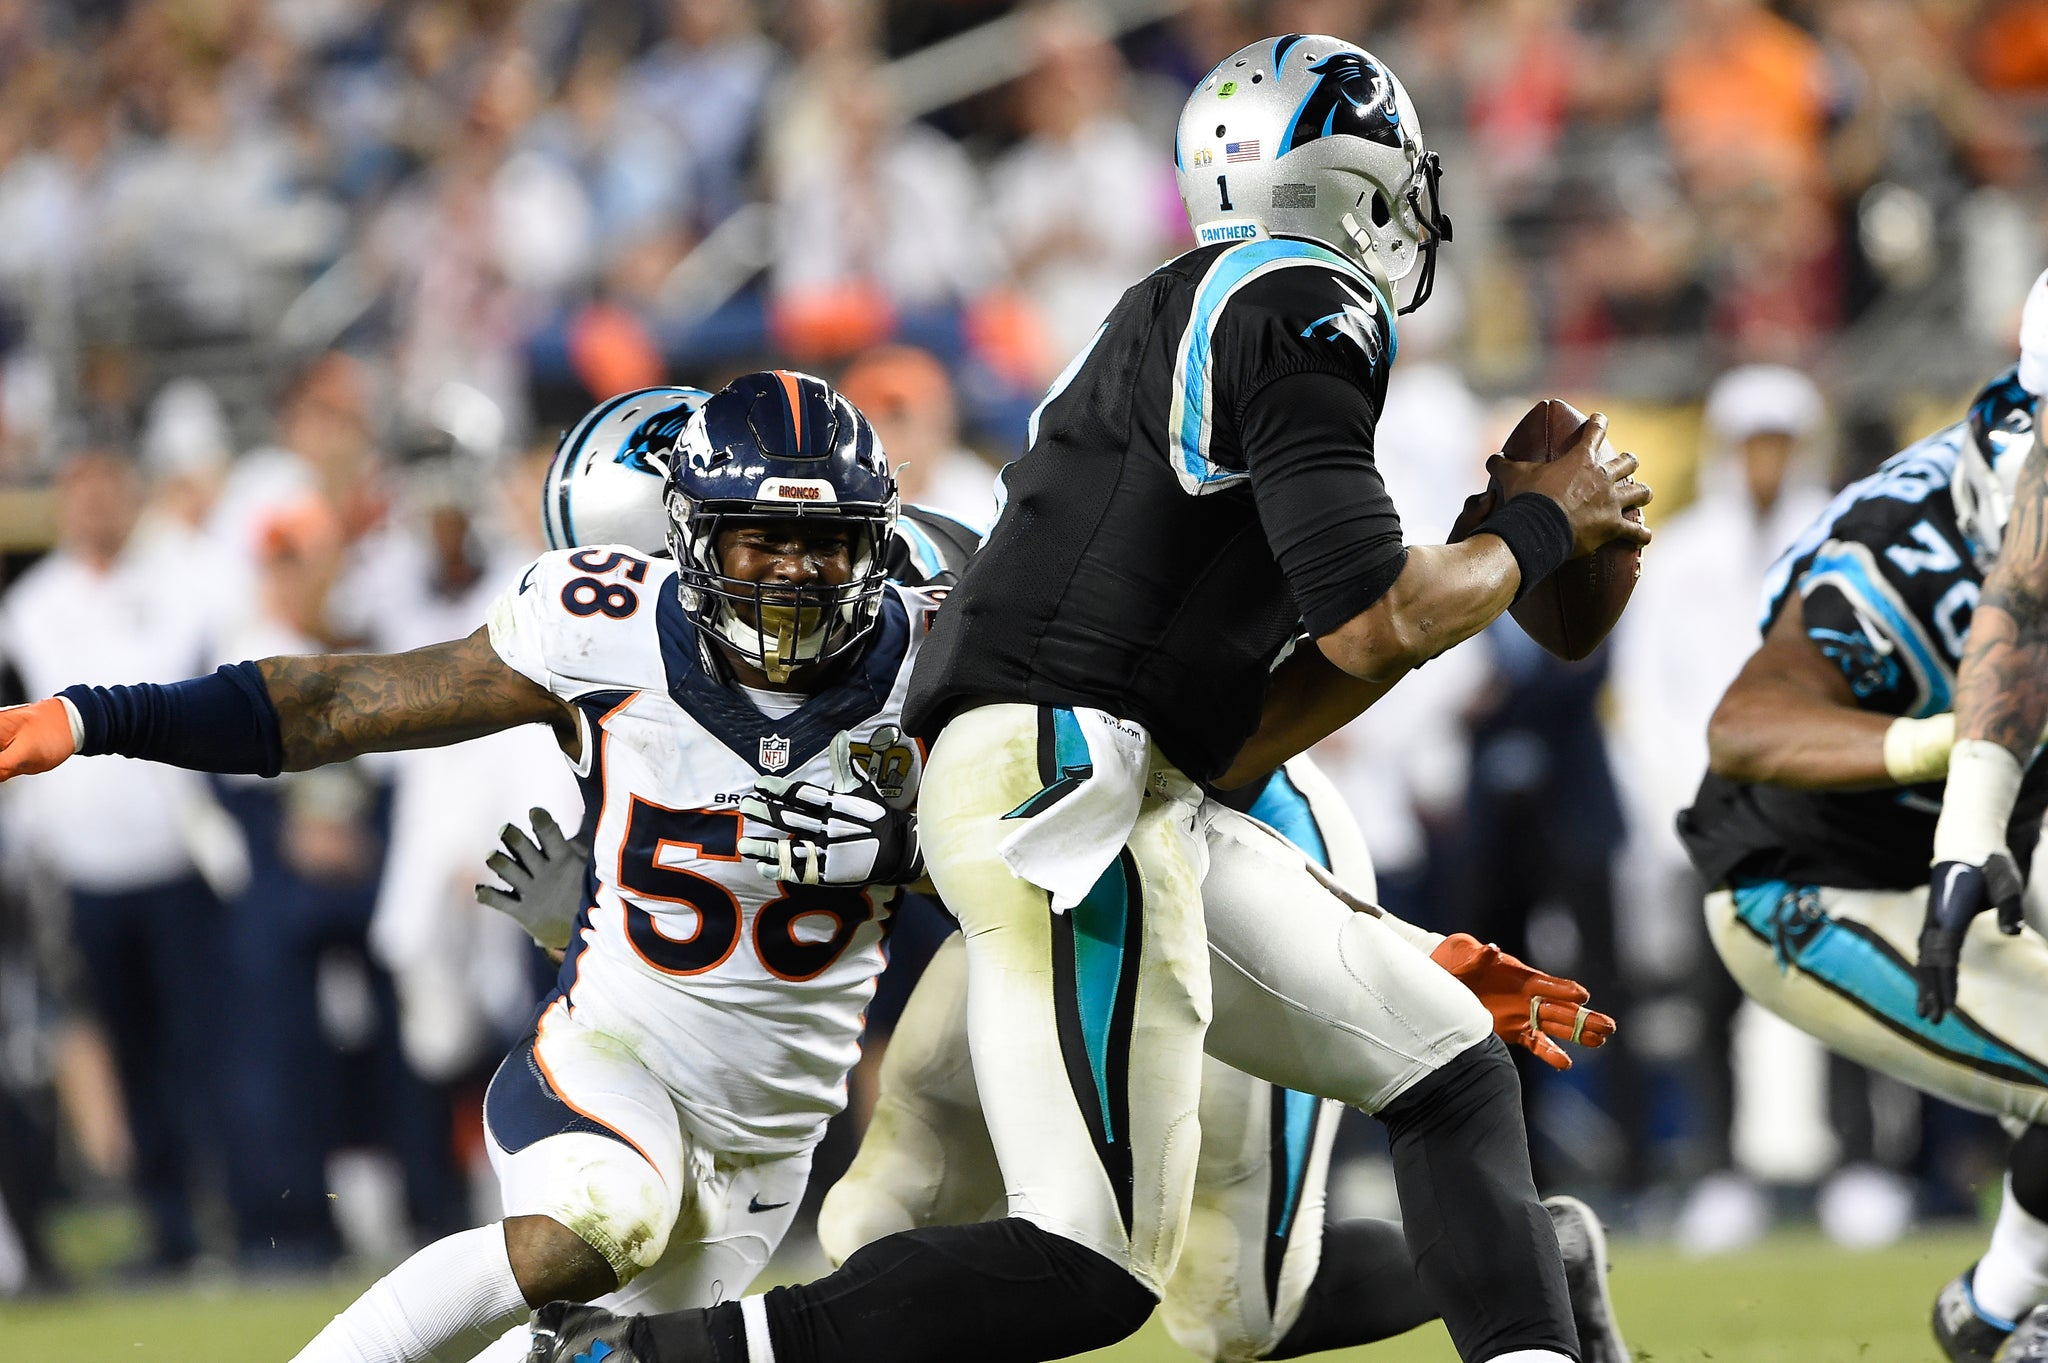 Von Miller (58) of the Denver Broncos sets his sights on Cam Newton (1) of the Carolina Panthers in the fourth quarter of Super Bowl 50.  -- Photo by Joe Amon/The Denver Post